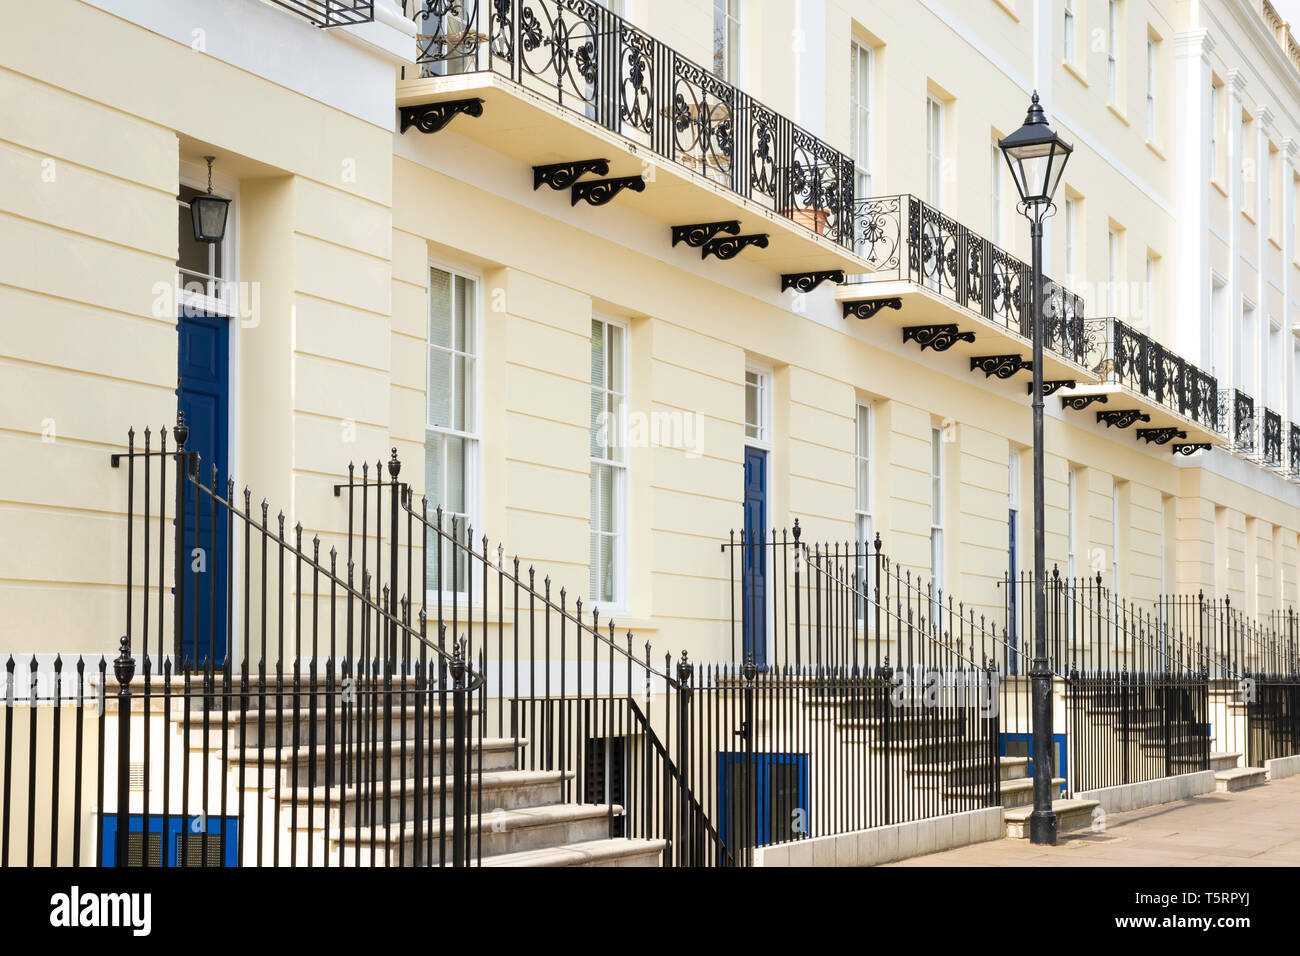 Blue doors and ornate iron wrought balconies on a Terrace of Georgian houses Imperial Square Cheltenham Spa Gloucestershire England GB UK Europe - Stock Image